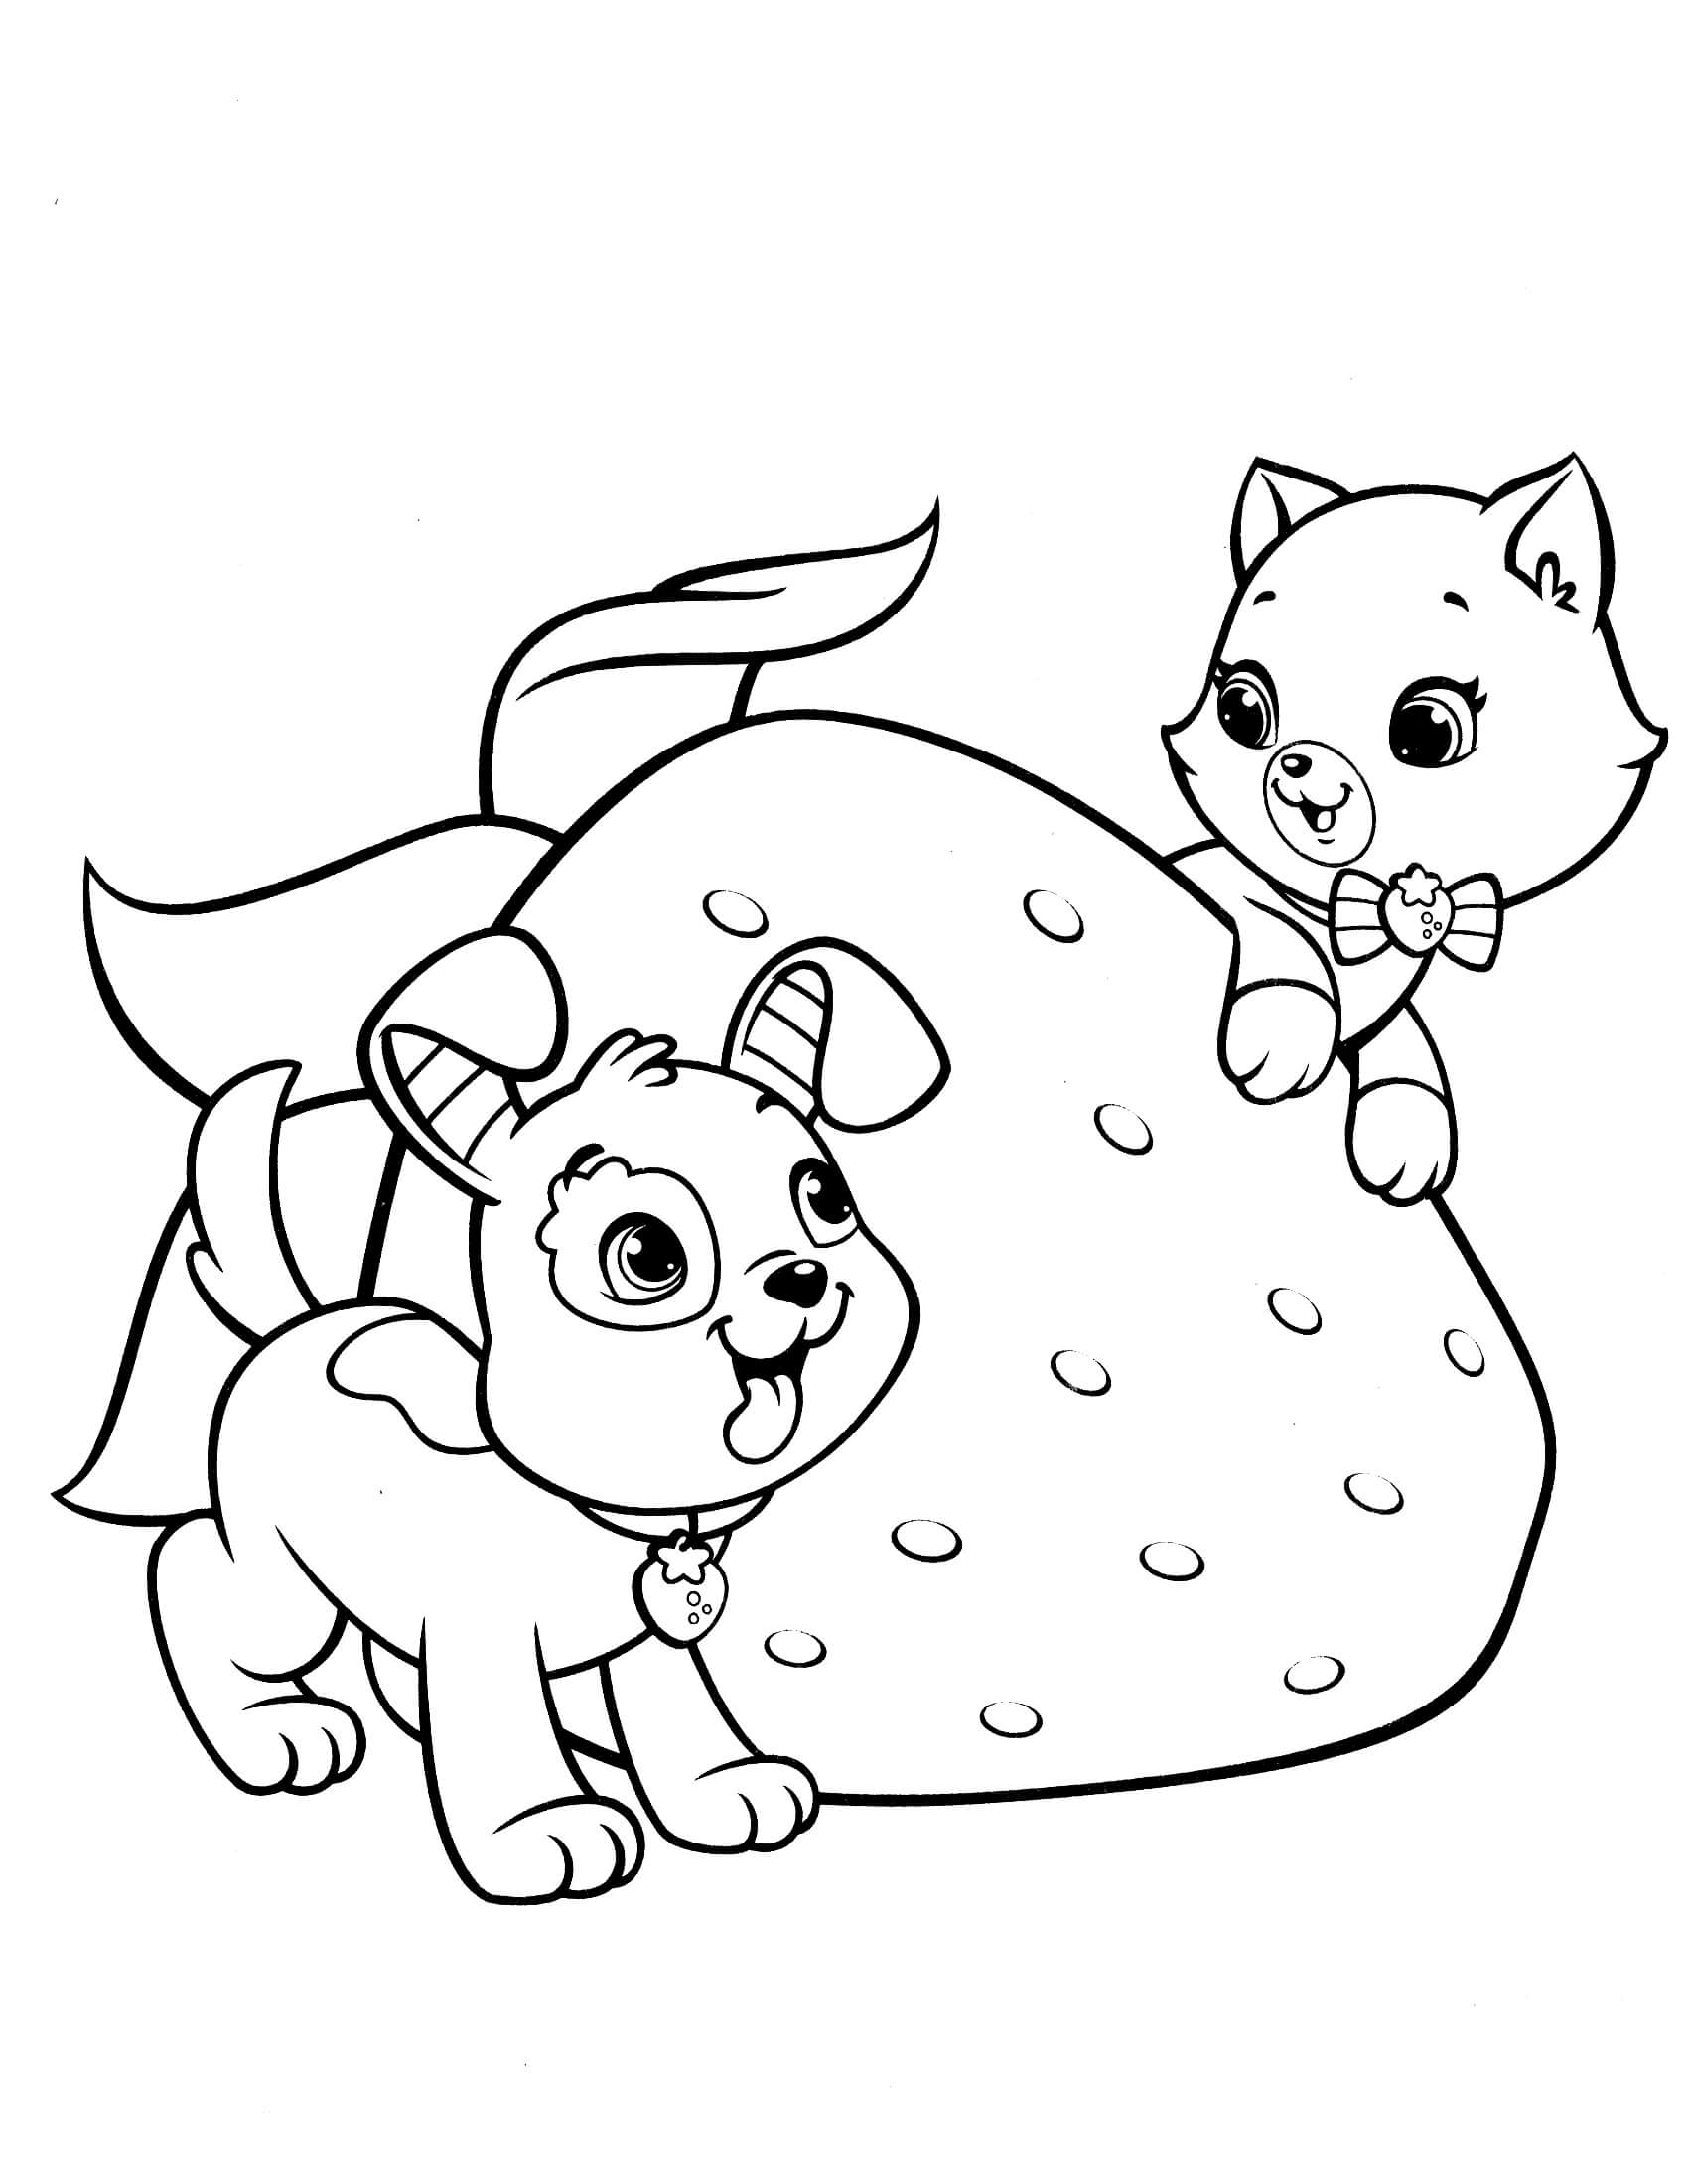 strawberry shortcake pictures to color straberry shortcake 3 coloringcolorcom color shortcake to strawberry pictures